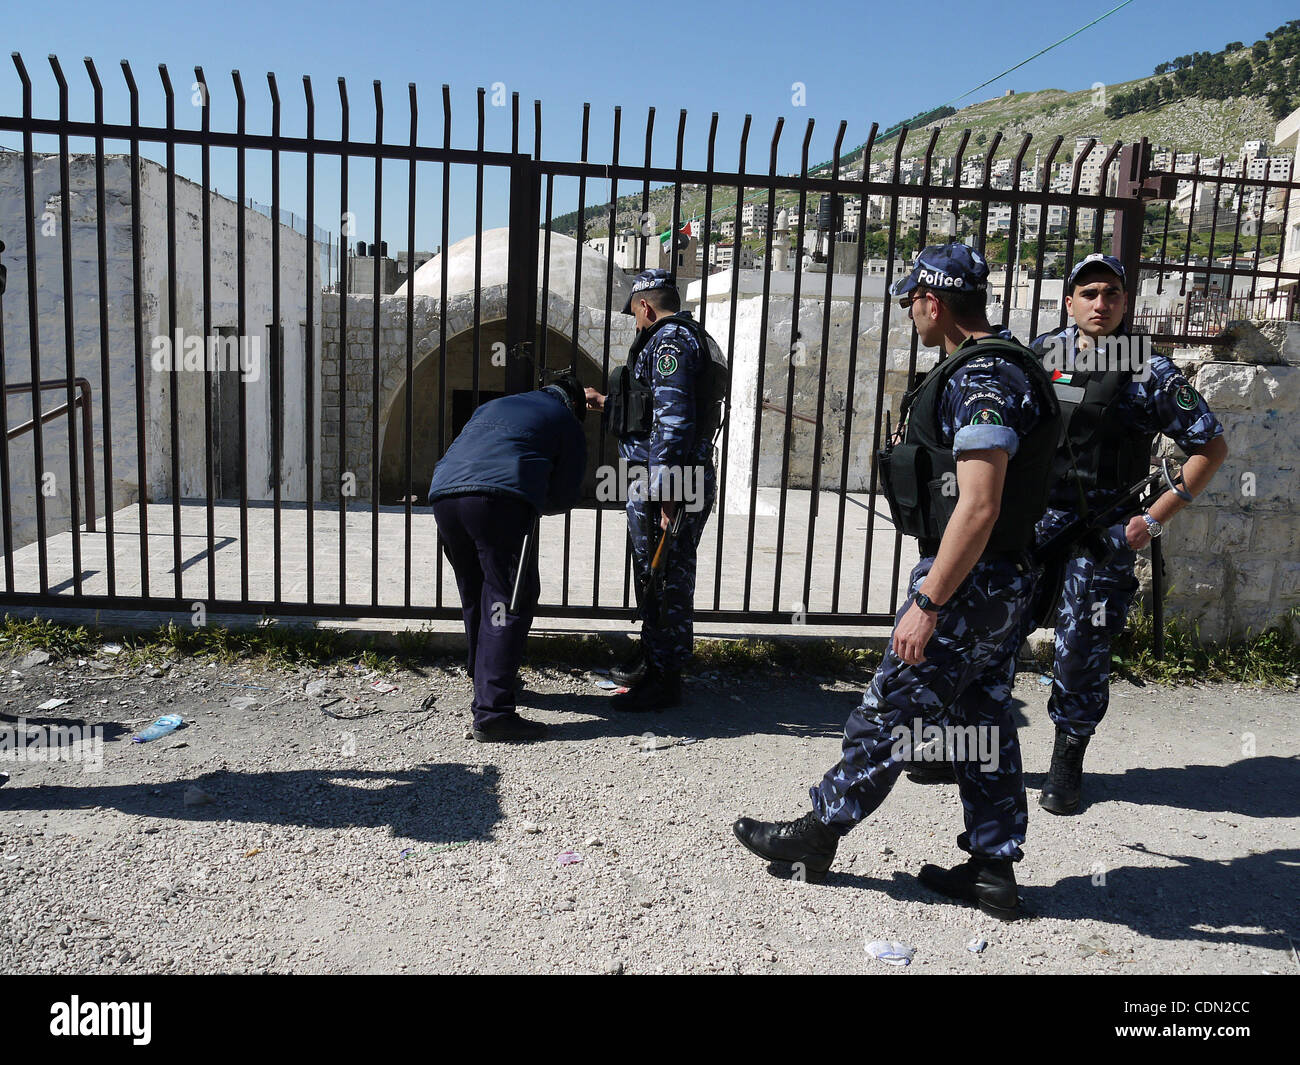 Apr 24, 2011 - Nablus, West Bank - Members of the Palestinian police block the gate of 'Joseph's Tomb' - Stock Image